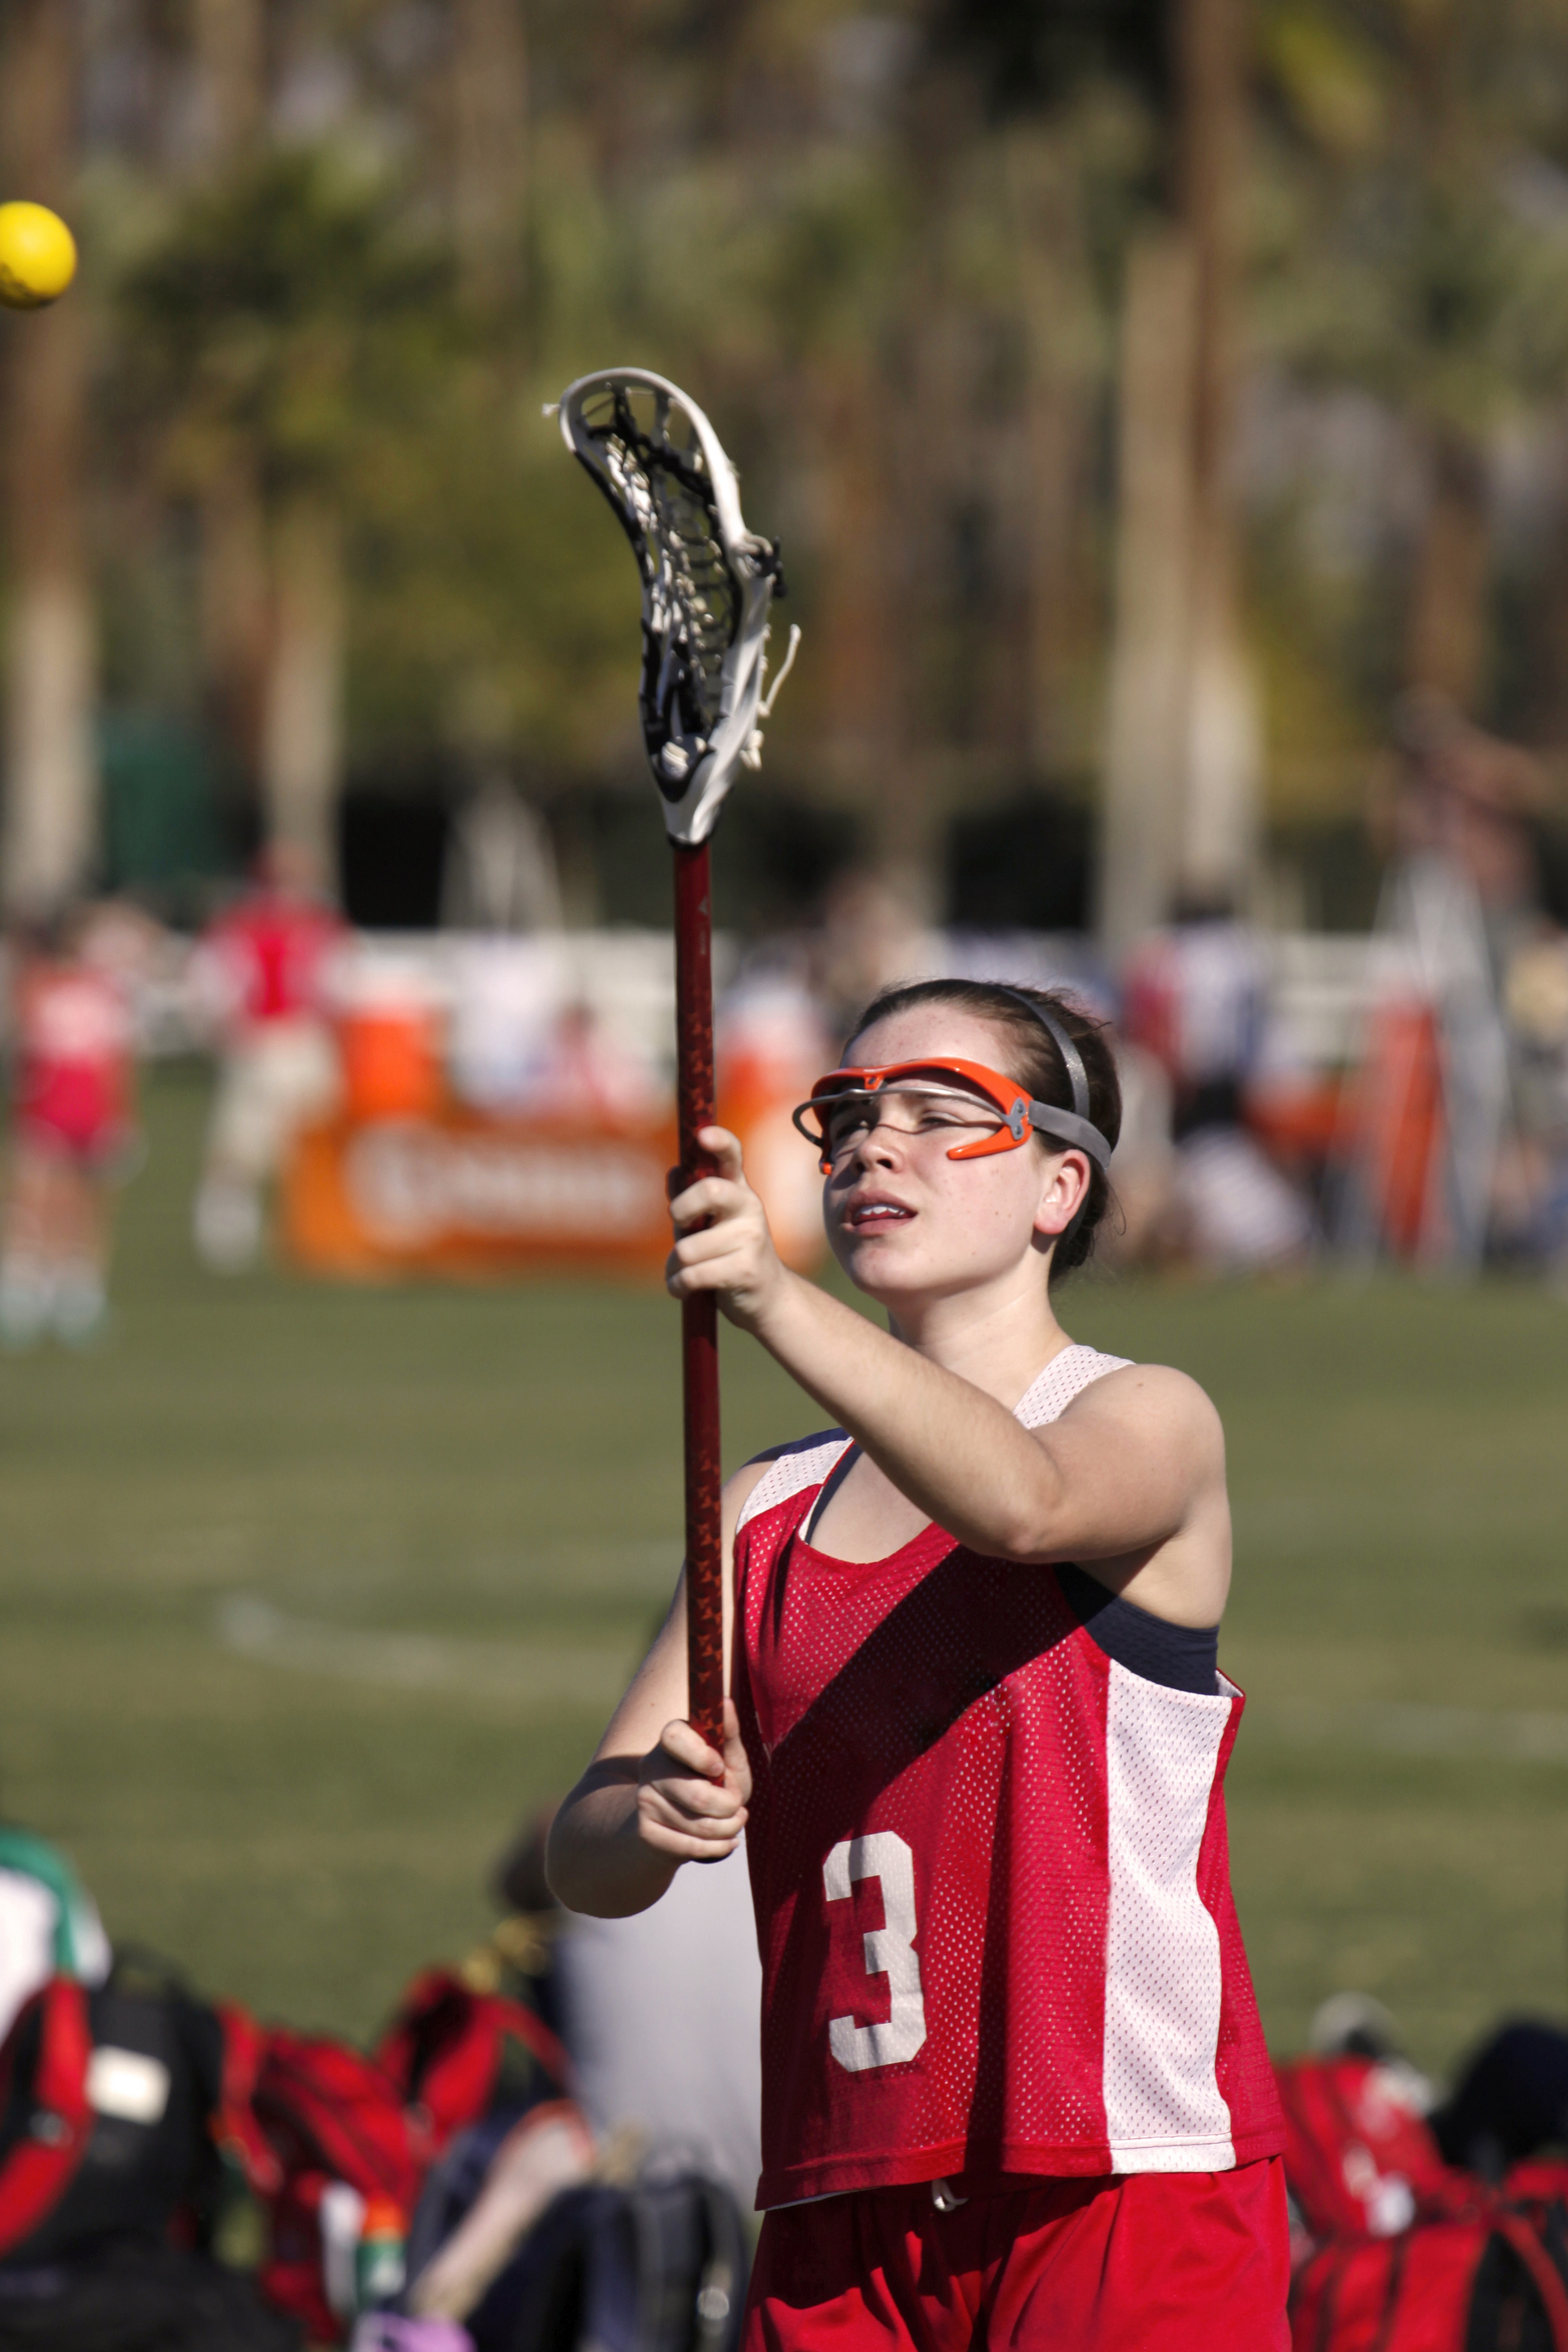 10 things only girls who play lacrosse understand - mouthguard